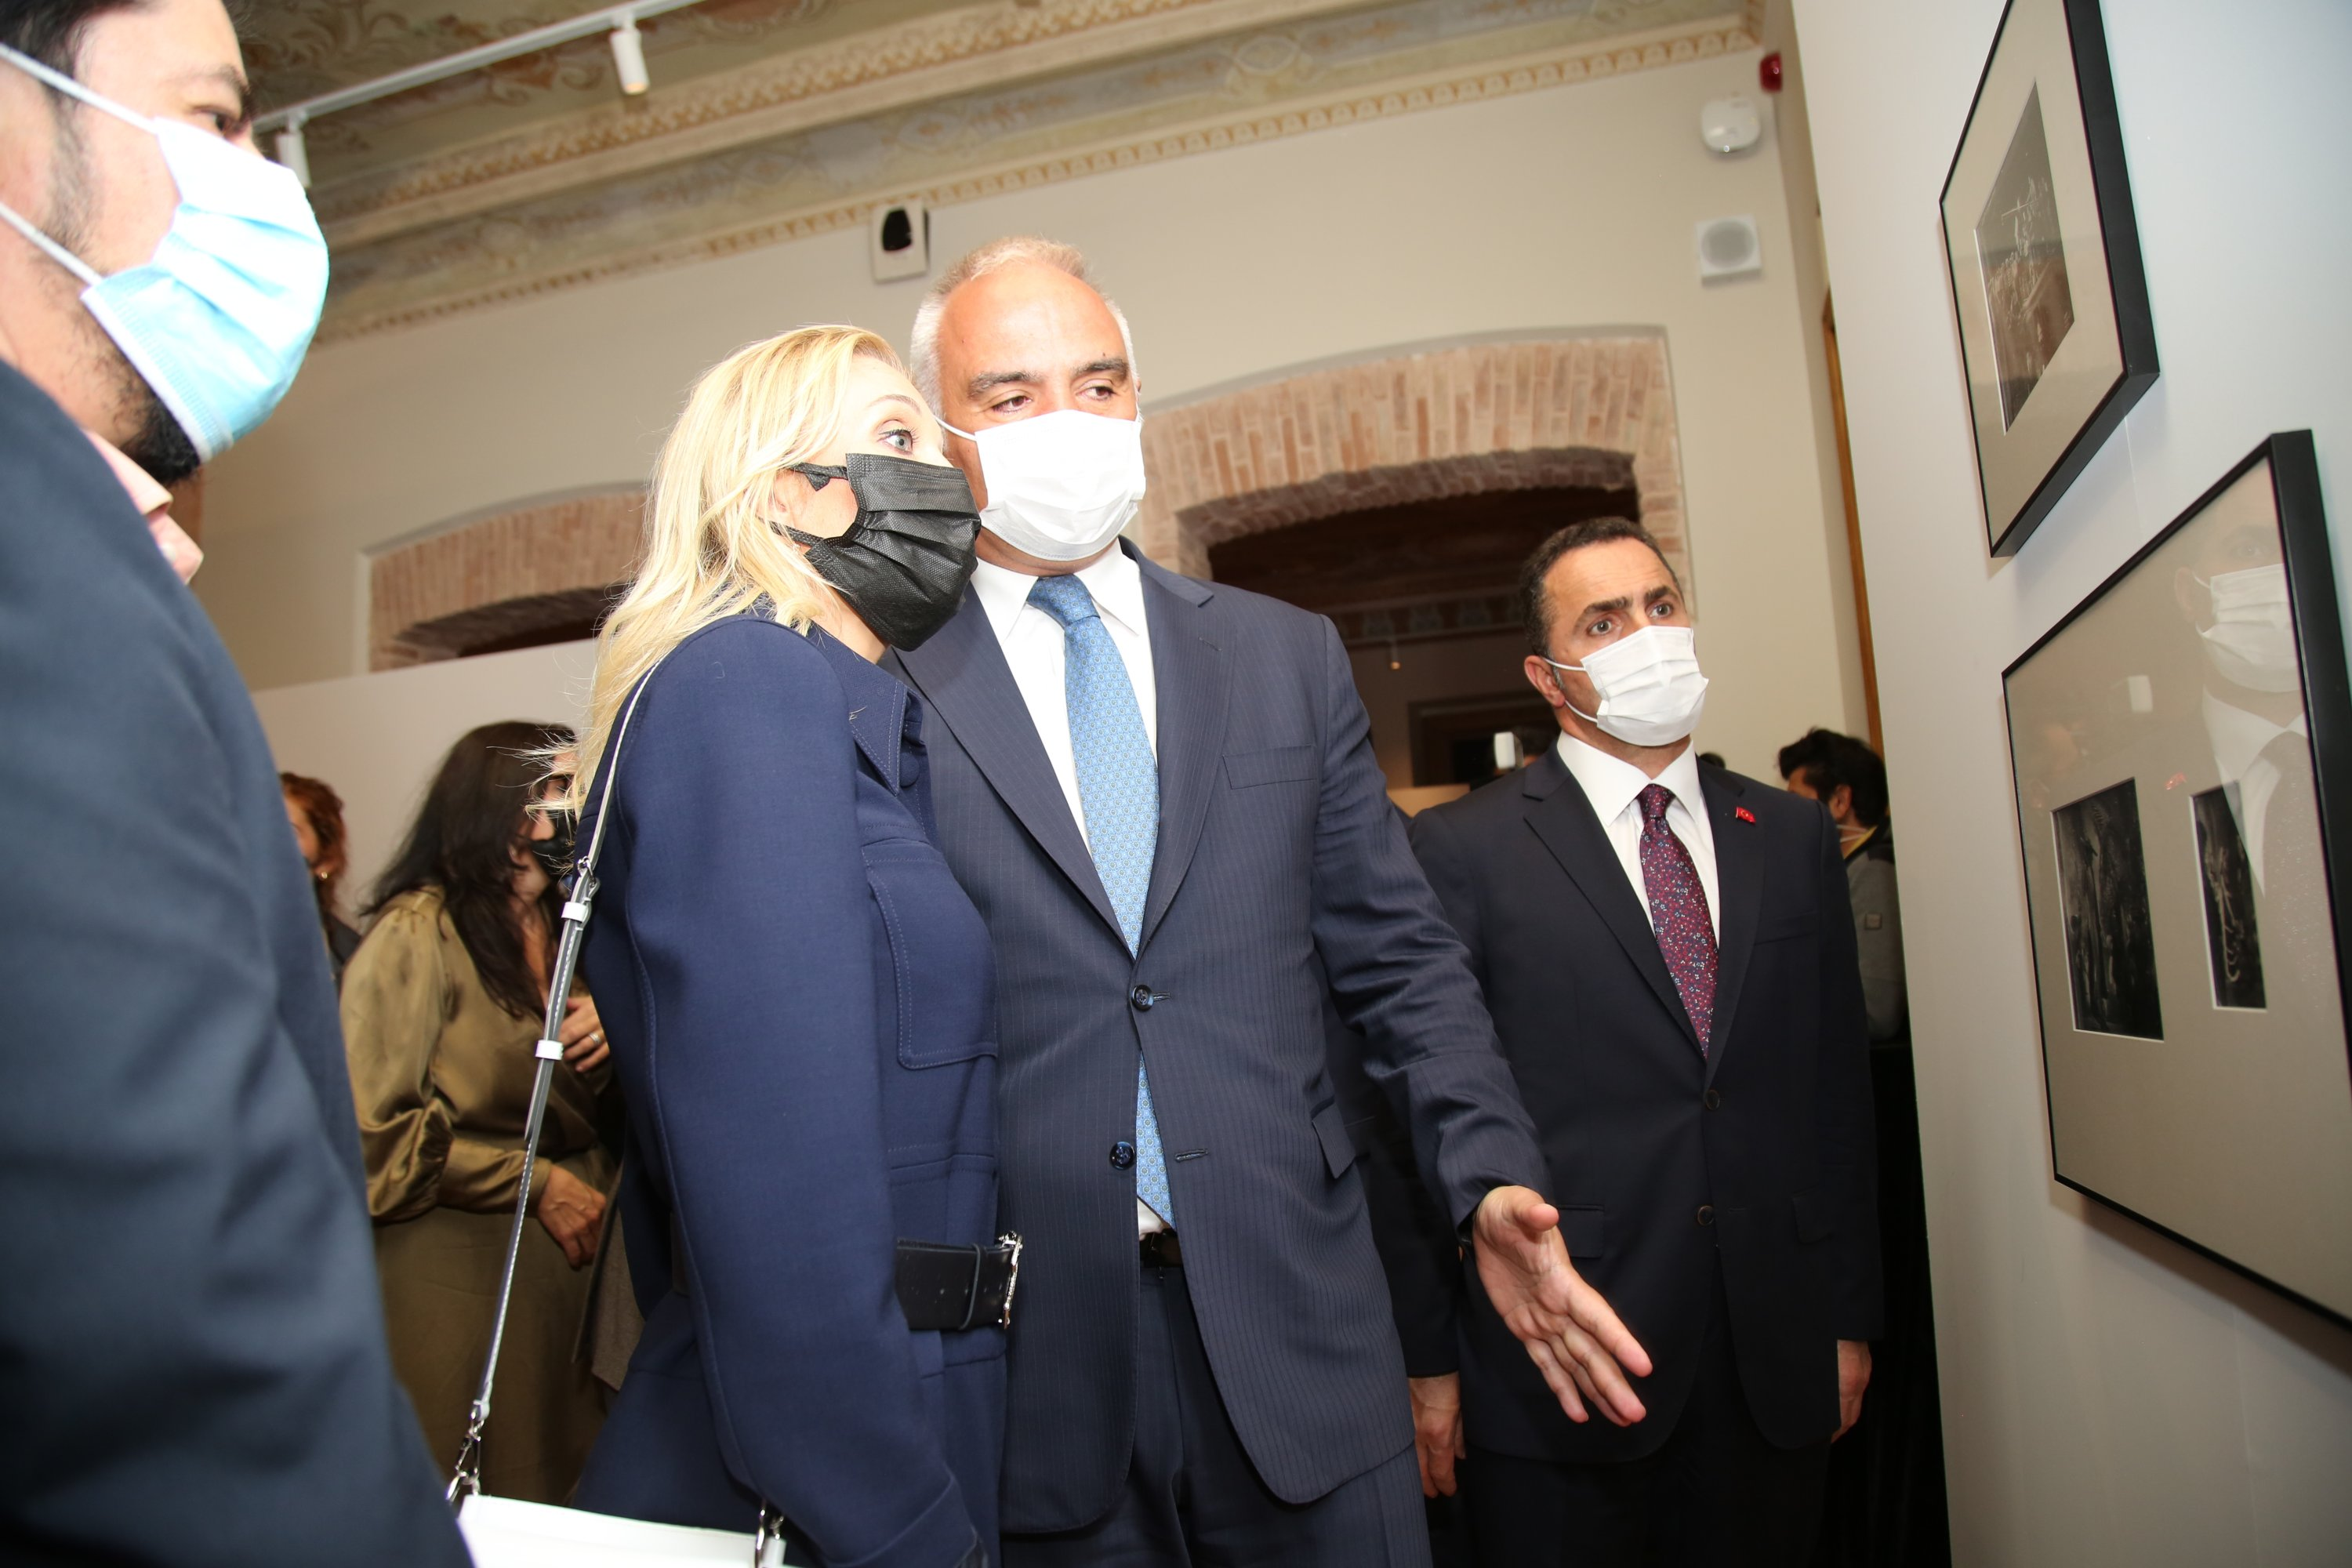 Minister of Culture and Tourism Mehmet Nuri Ersoy (C-R) and his wife Pervin Ersoy (C-L) walk through the 'Nazarin' exhibition at the Istanbul Cinema Museum, in Istanbul, Turkey, Oct. 8, 2021.